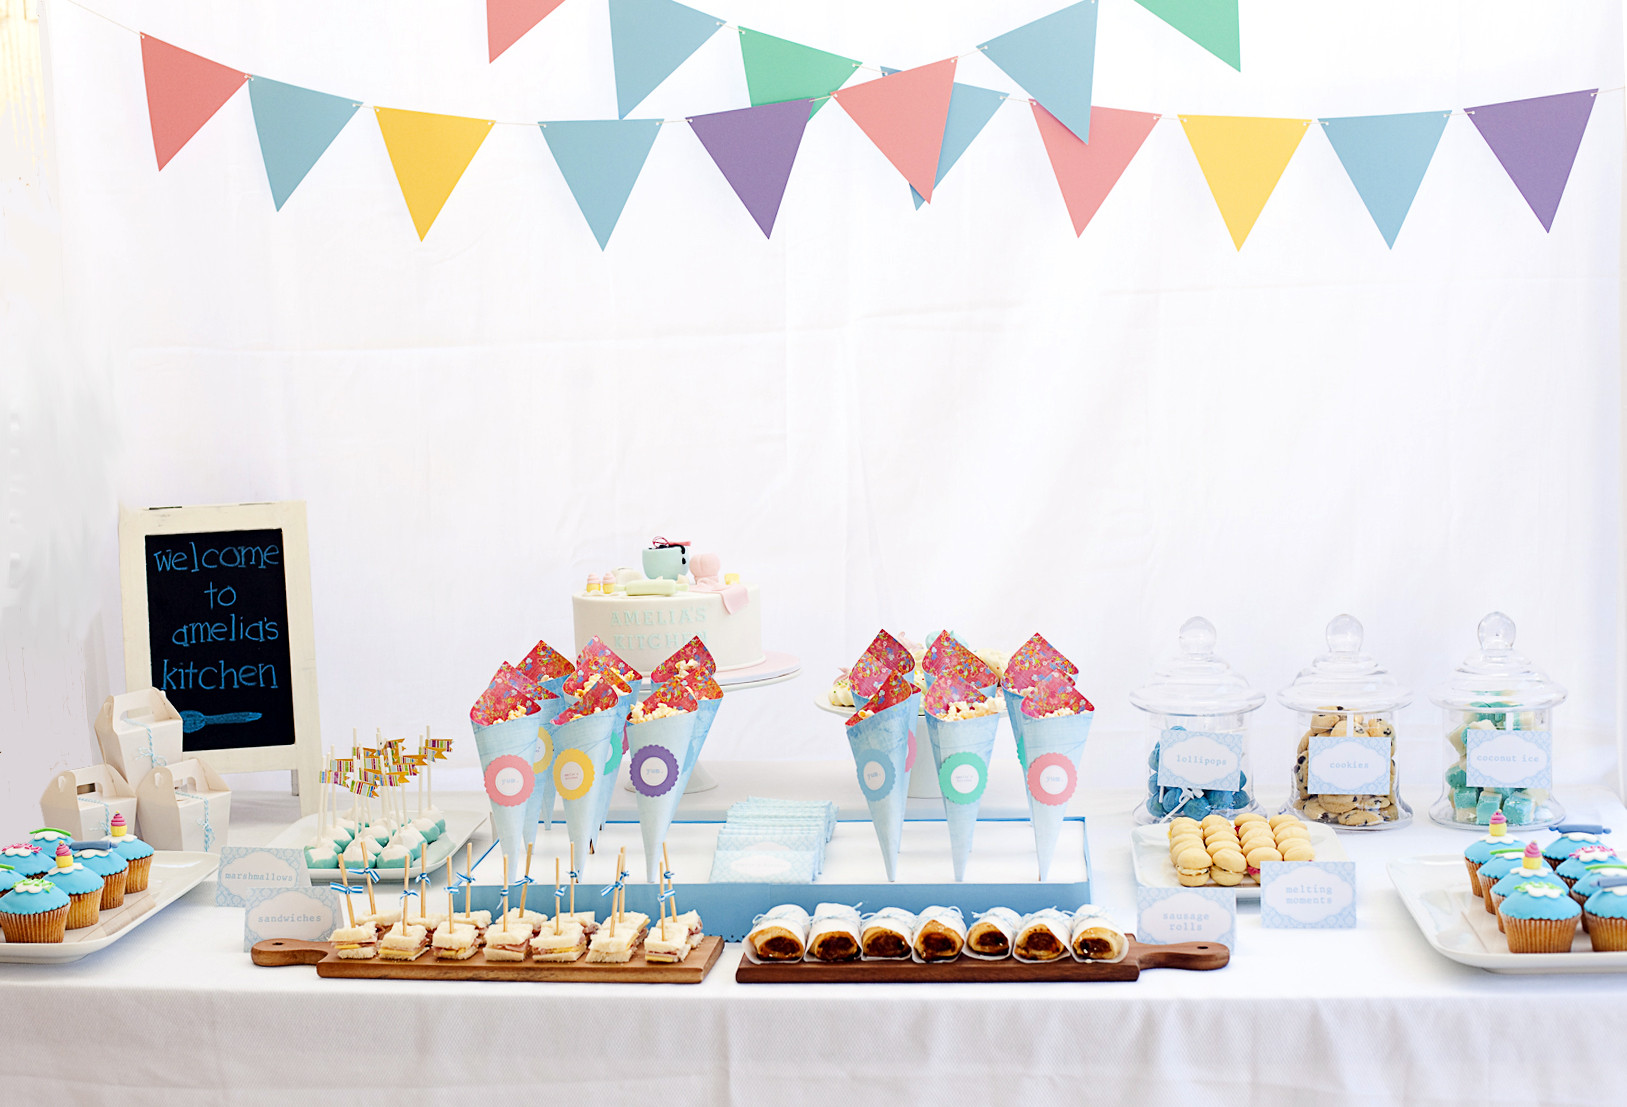 Best ideas about Cooking Birthday Party . Save or Pin Real Parties Cooking in Style Now.